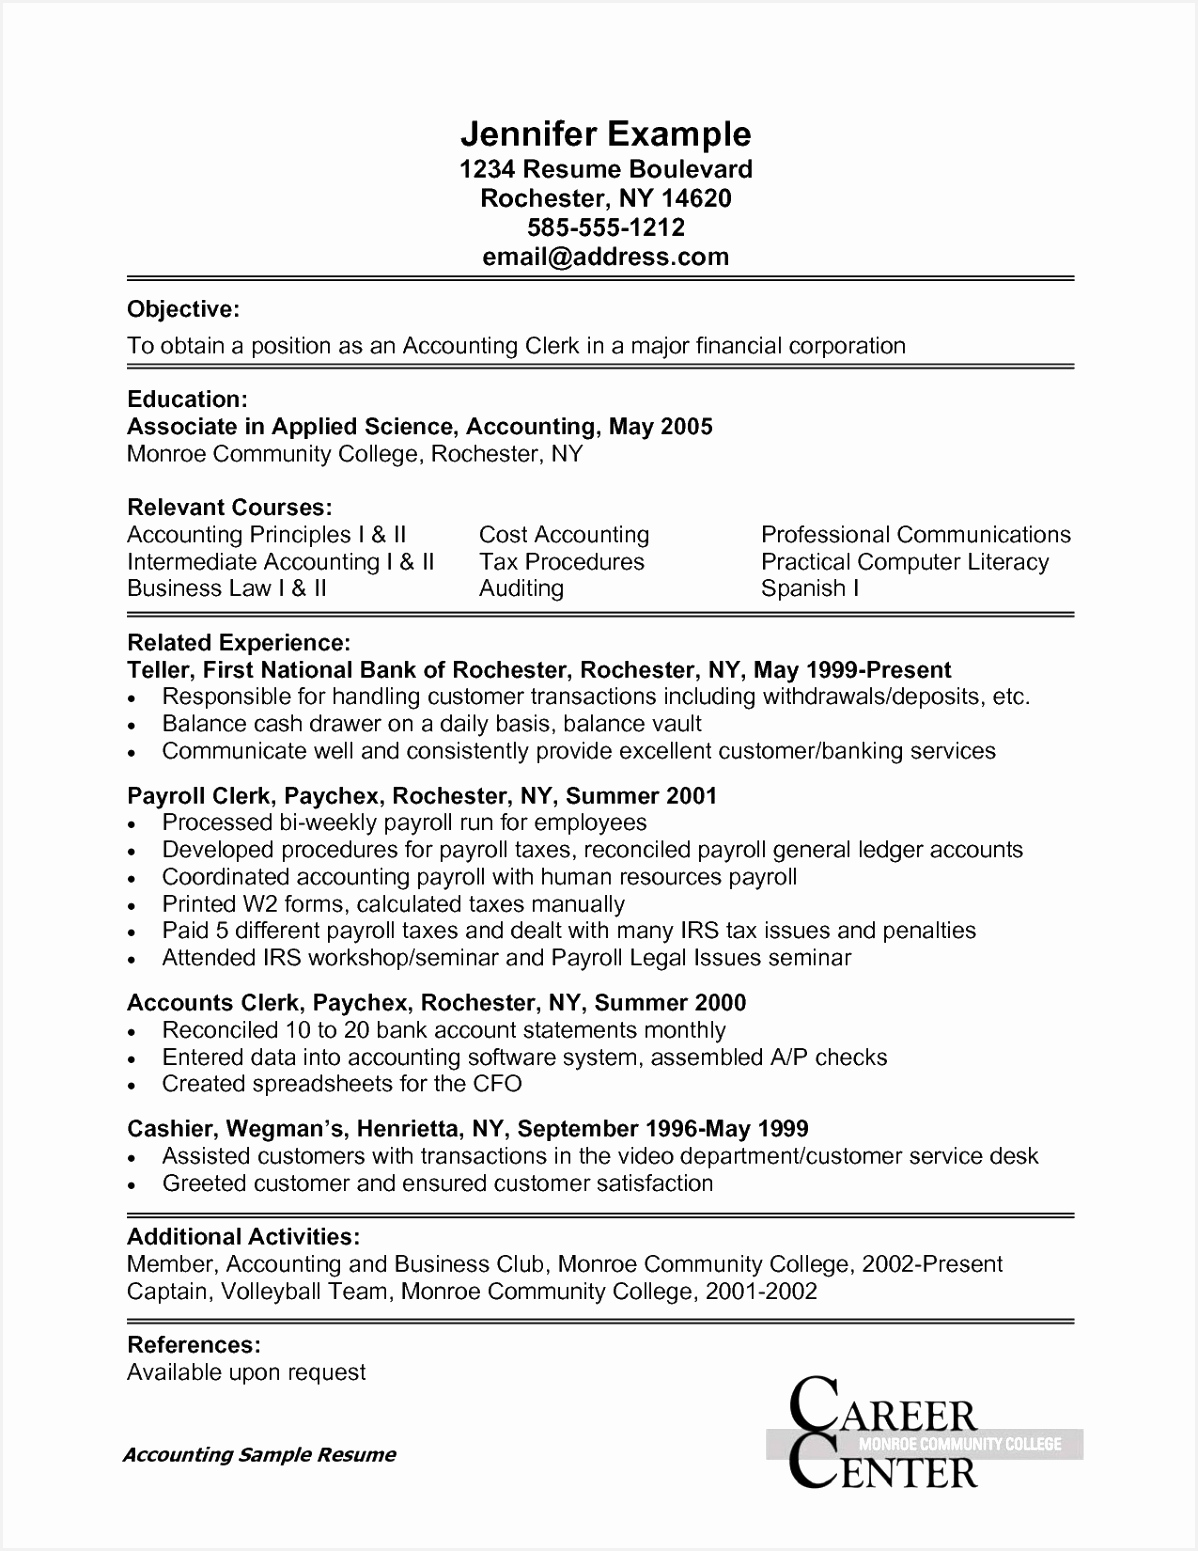 Customer Service Resume Samples Free Executive assistant Resume Samples Unique Resume Examples 0d Skills 15511198gsxao